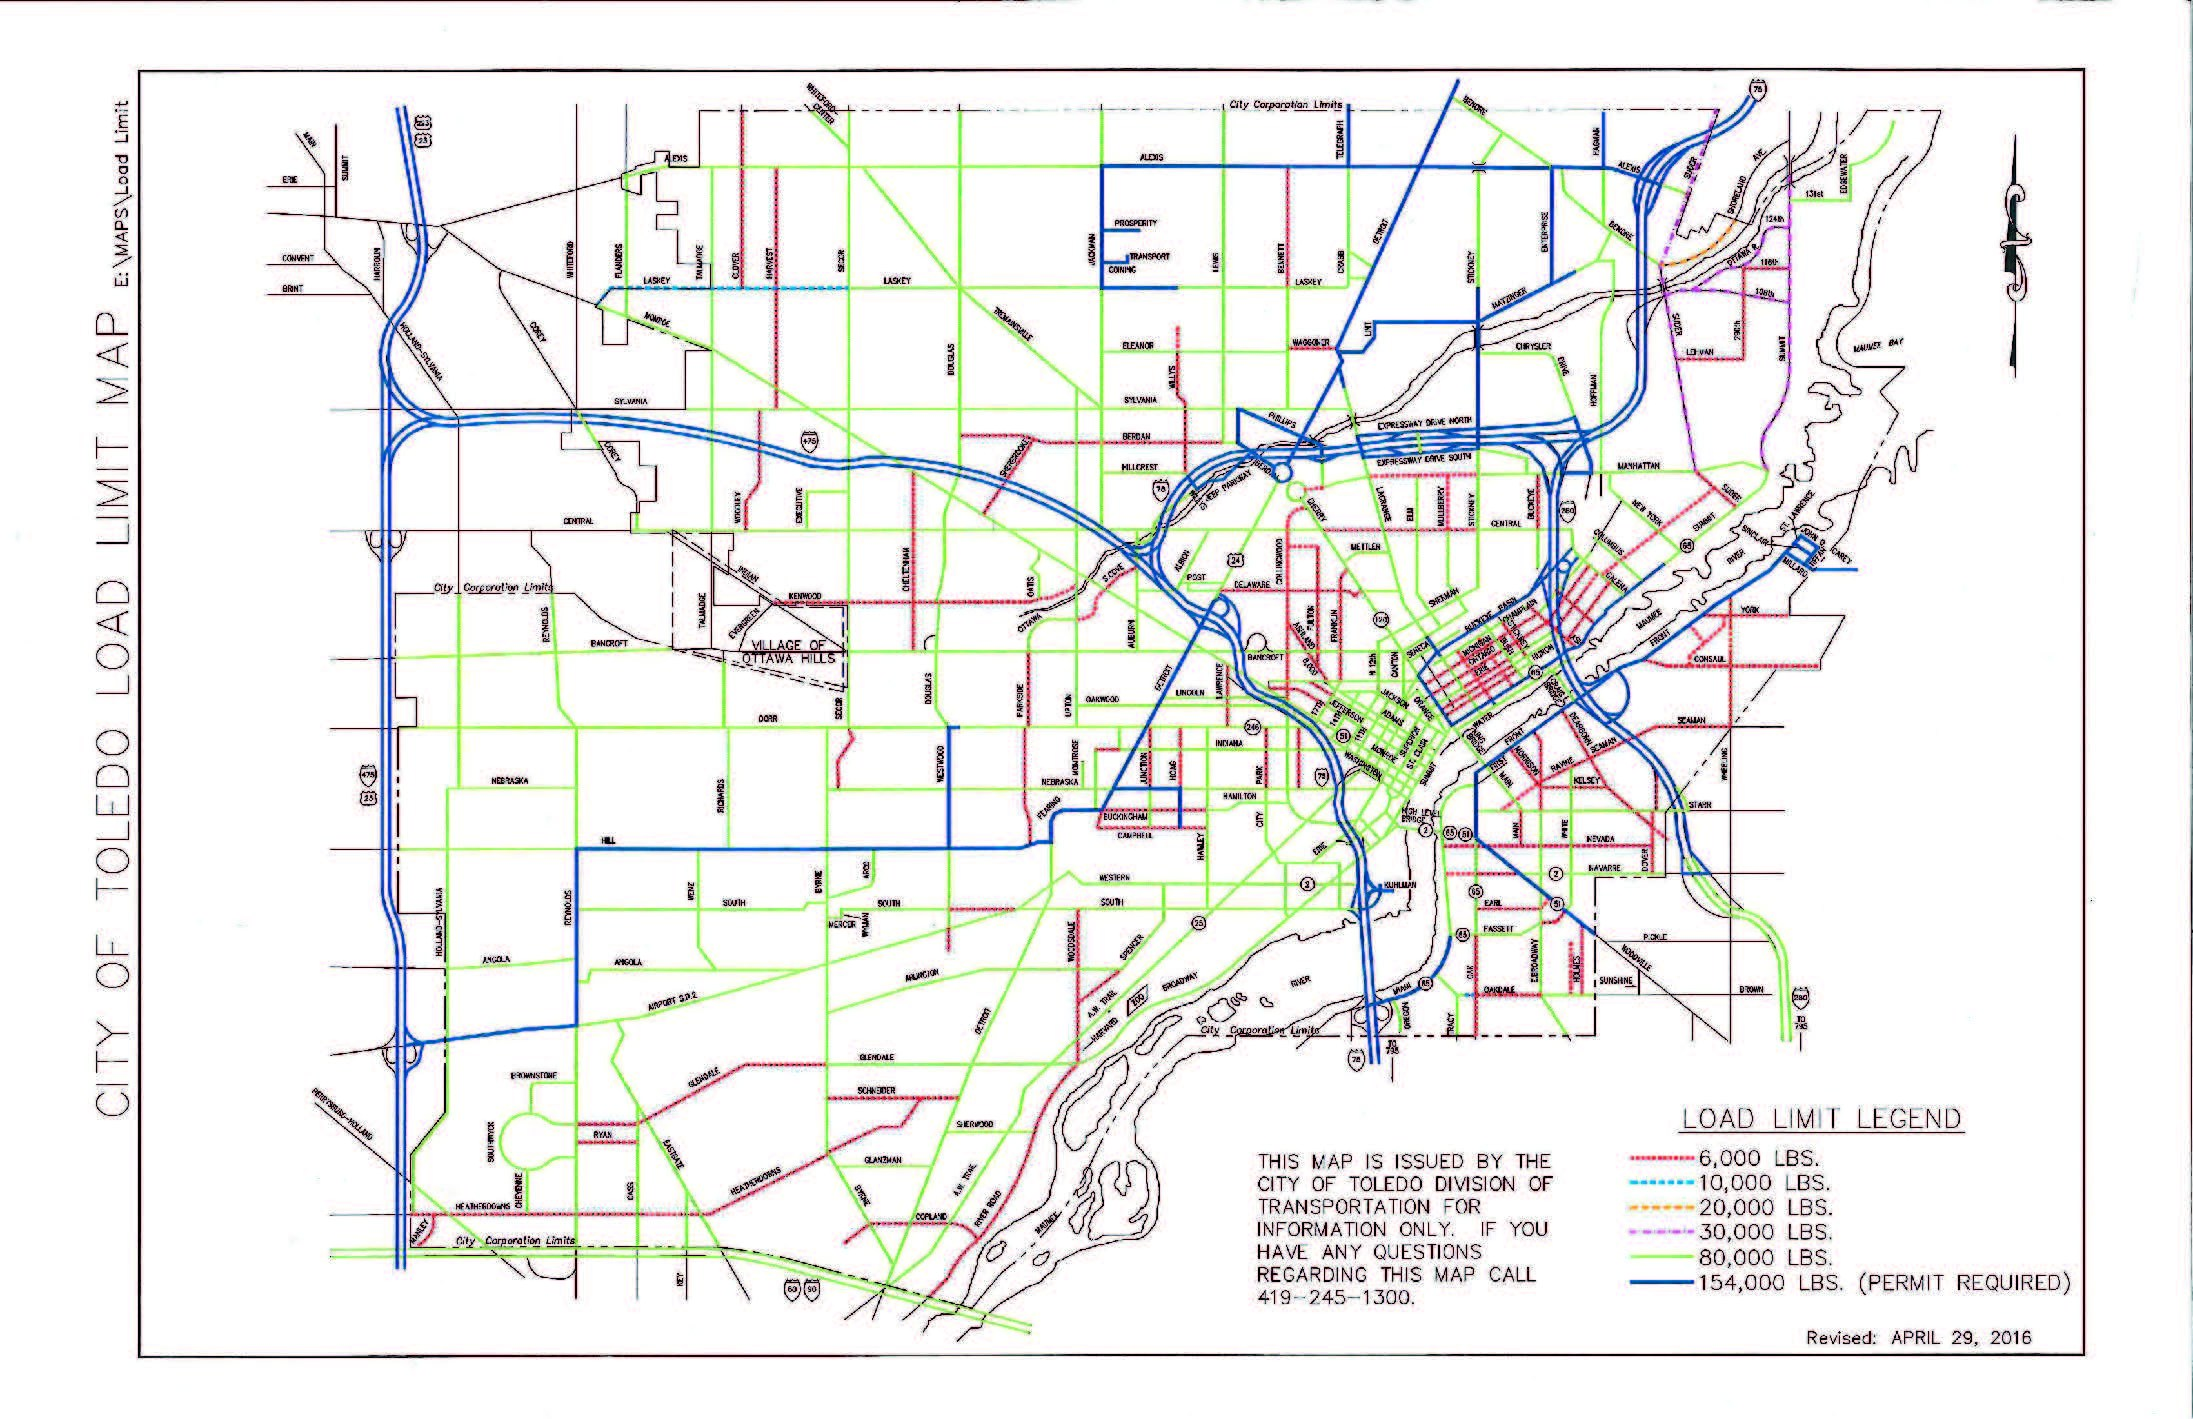 City of Toledo Approved Truck Routes